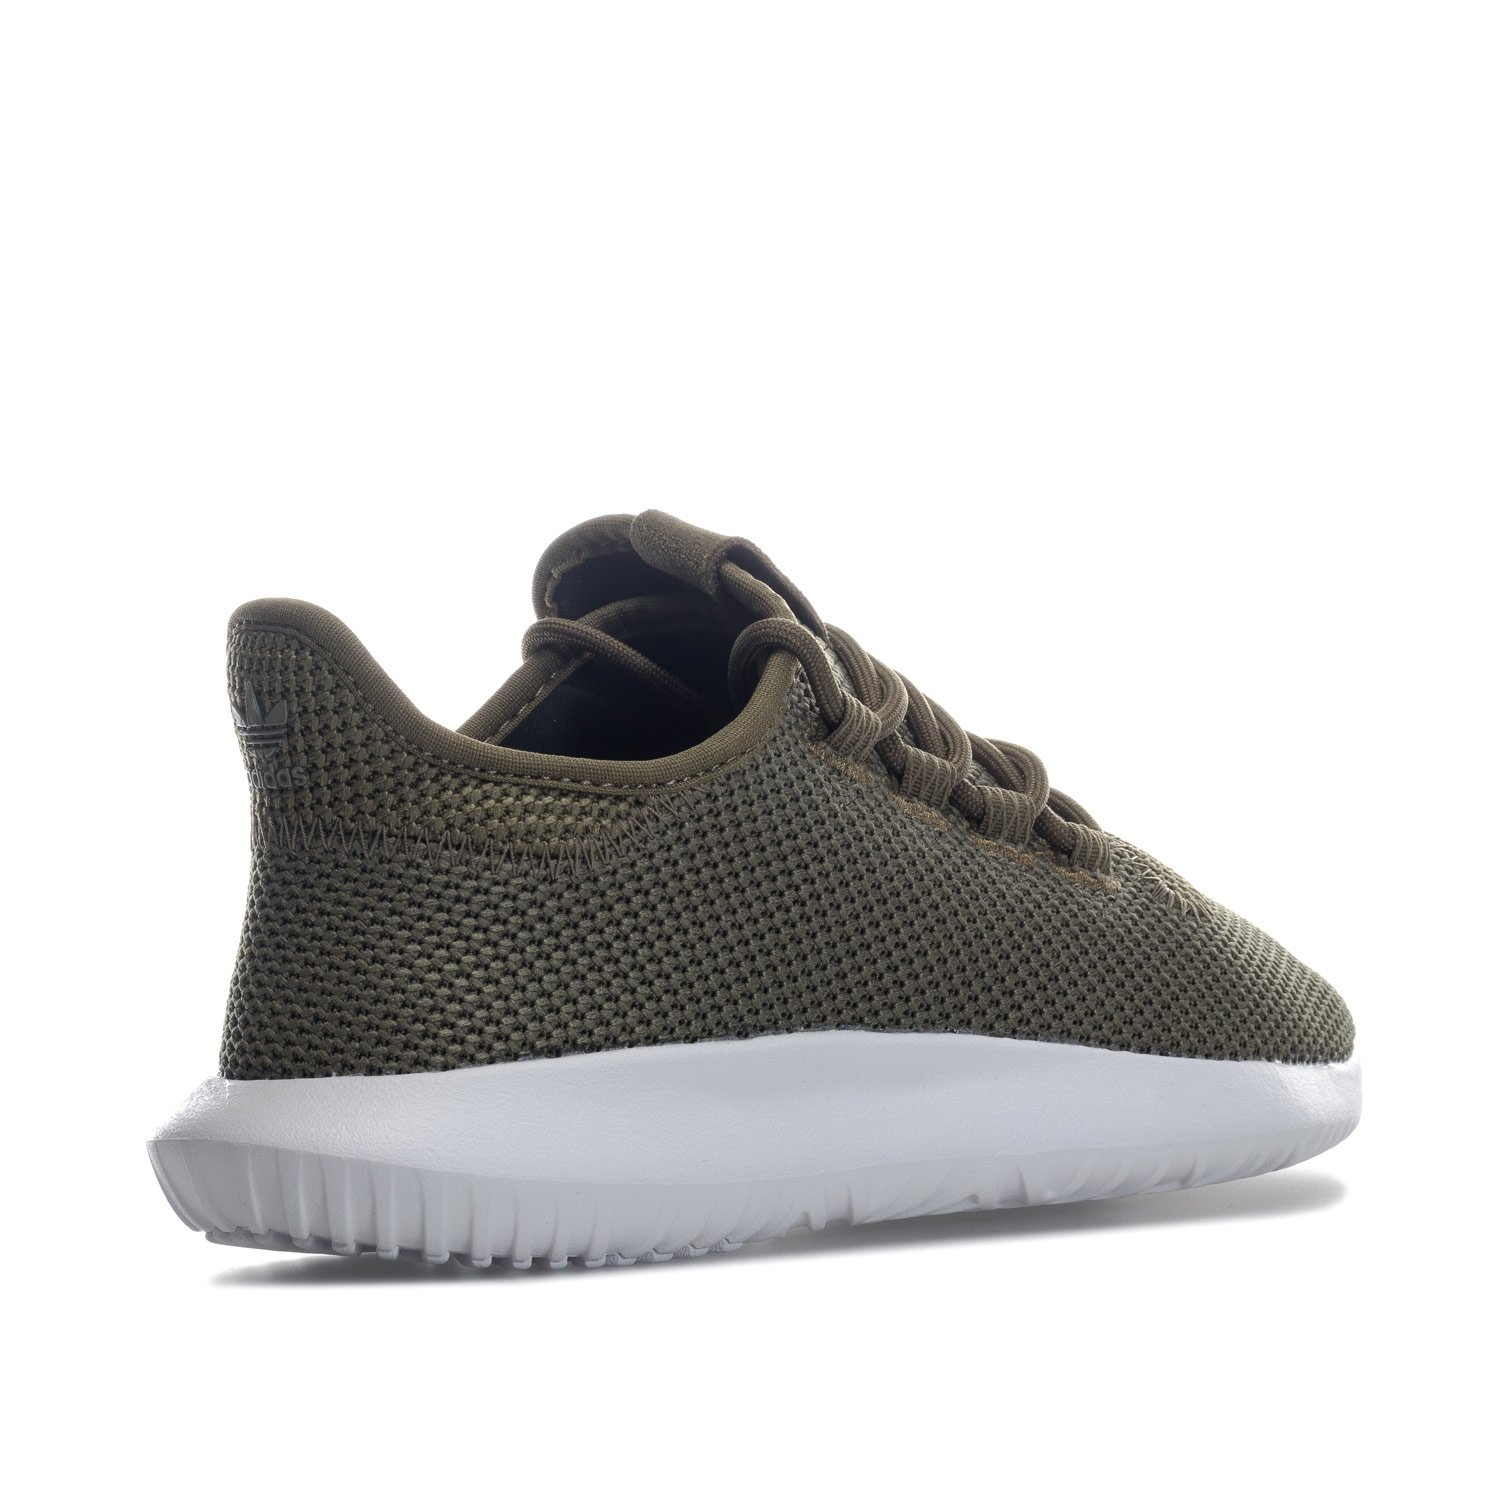 Amazon.com: adidas Originals Boys Tubular Shadow Knit Trainers US6 Green: Shoes